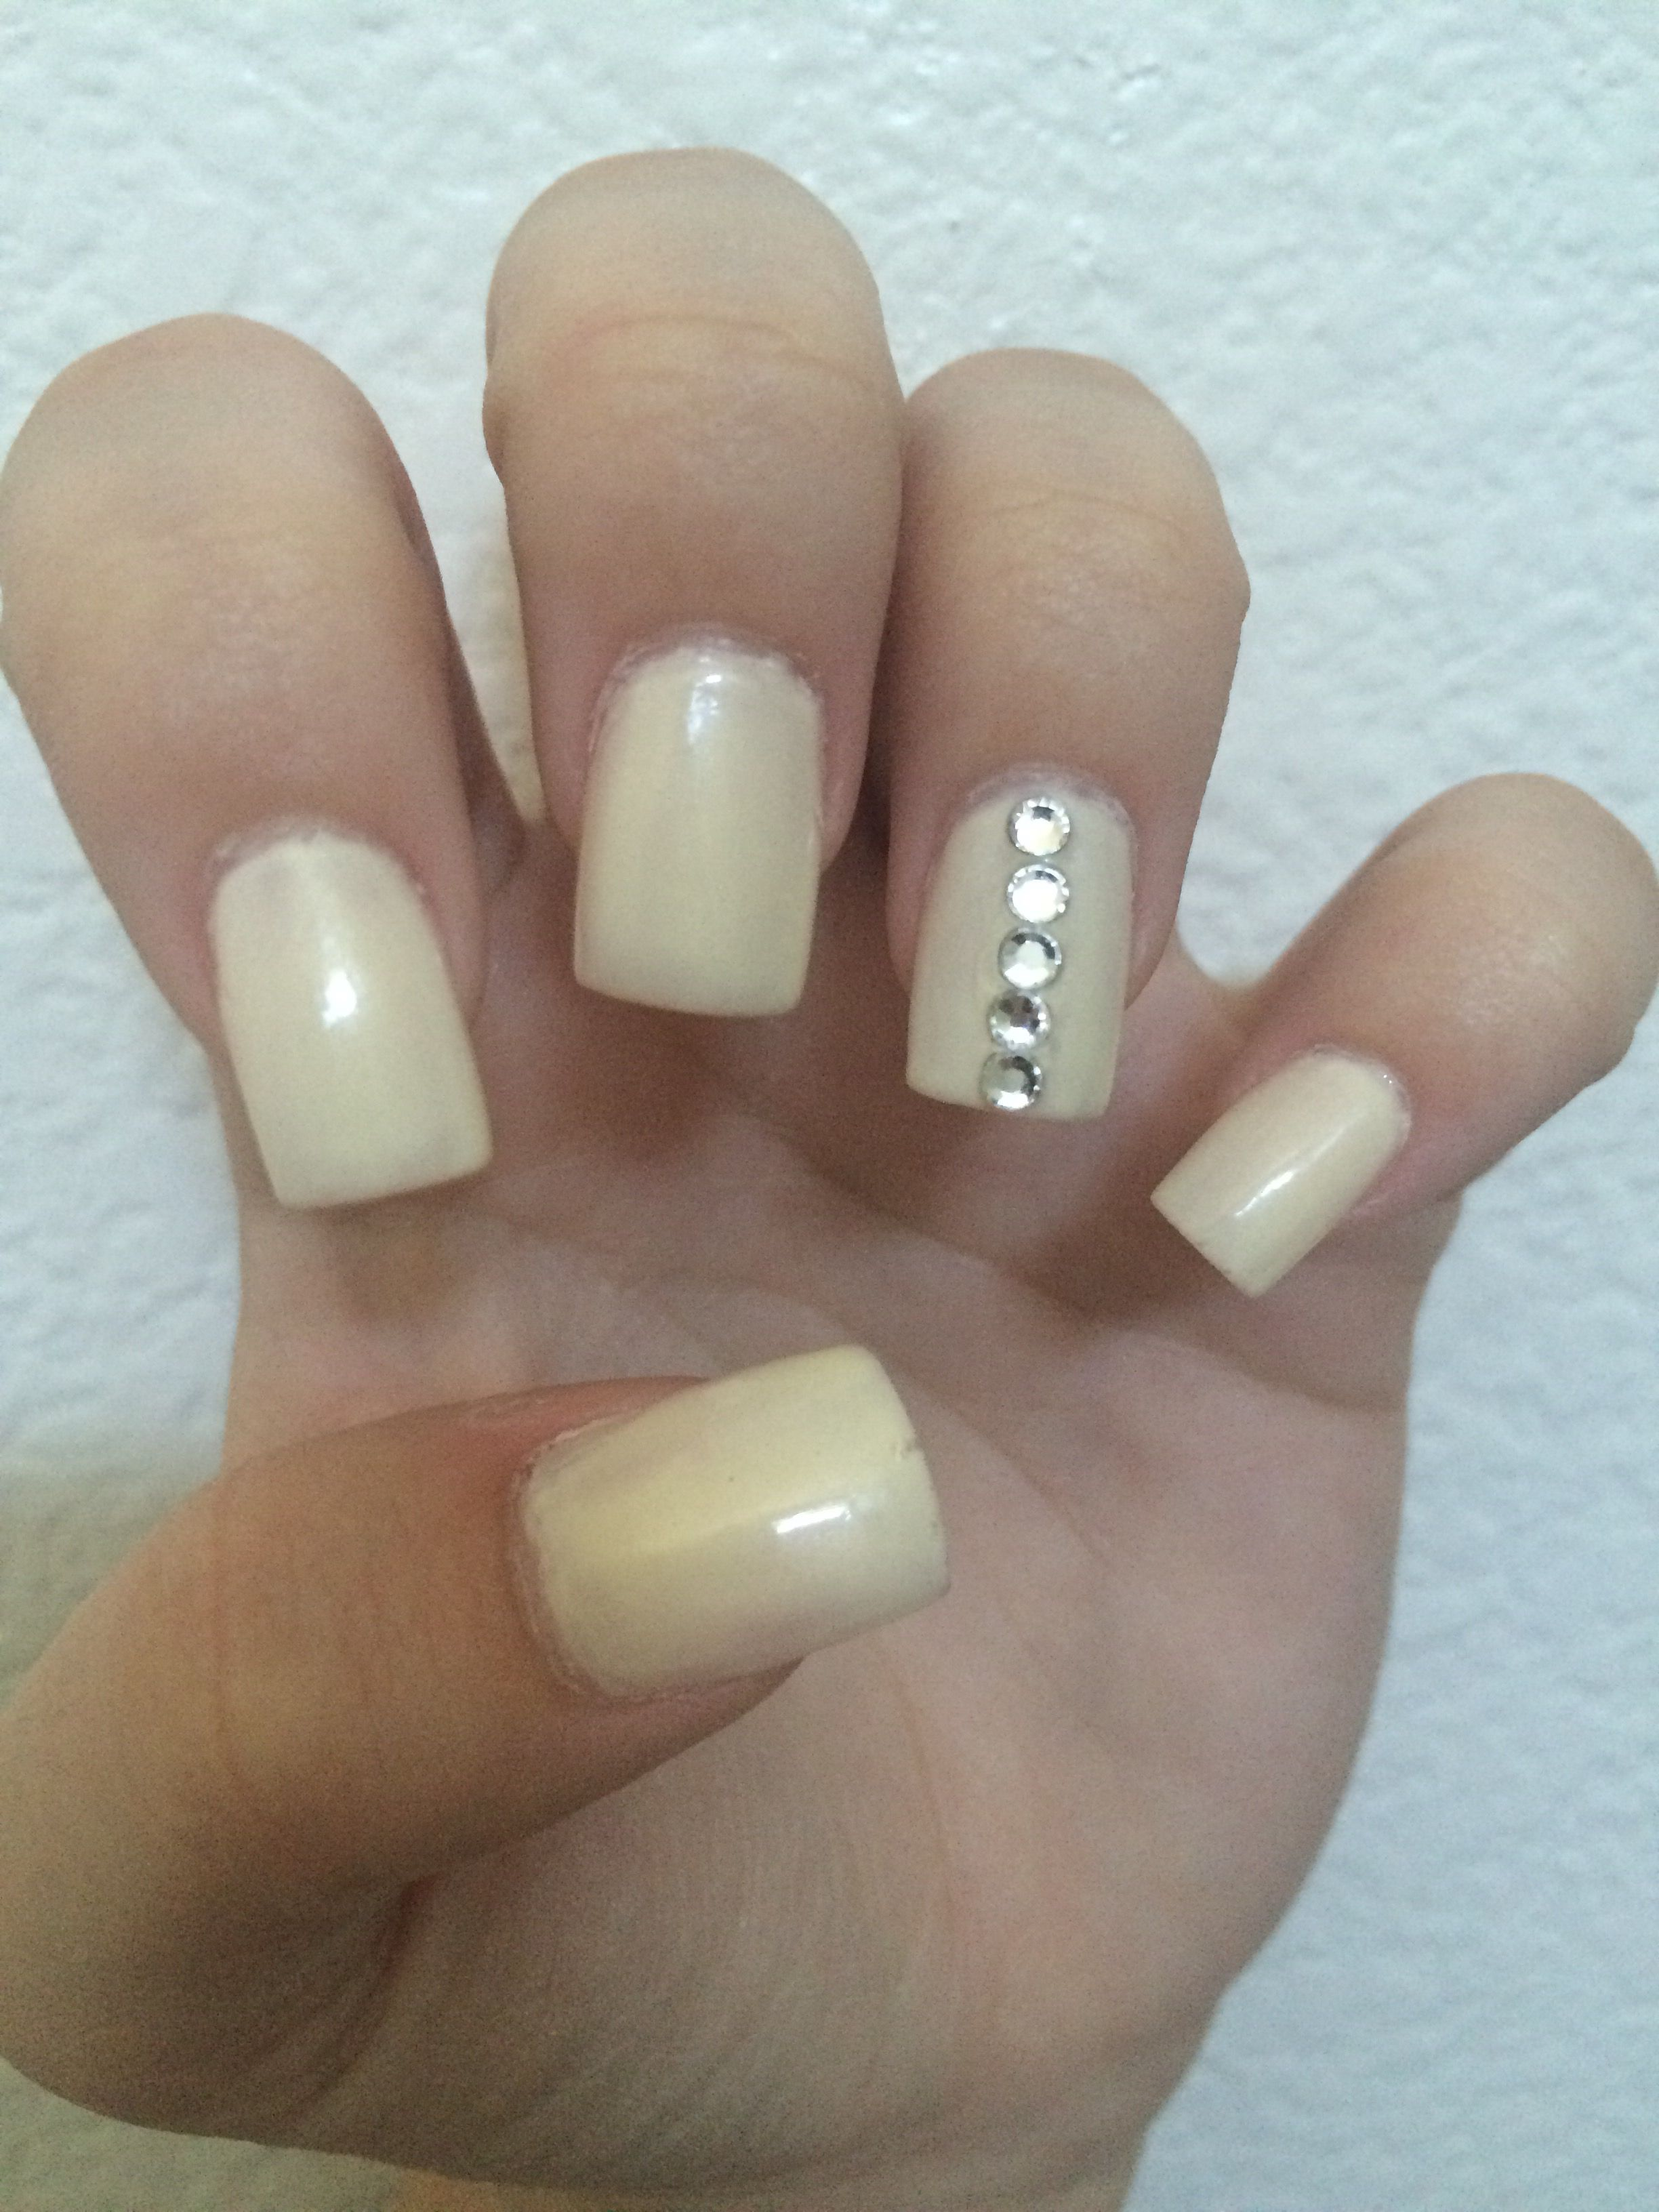 off-white acrylic nails with simple rhinestone design. | Nails ...